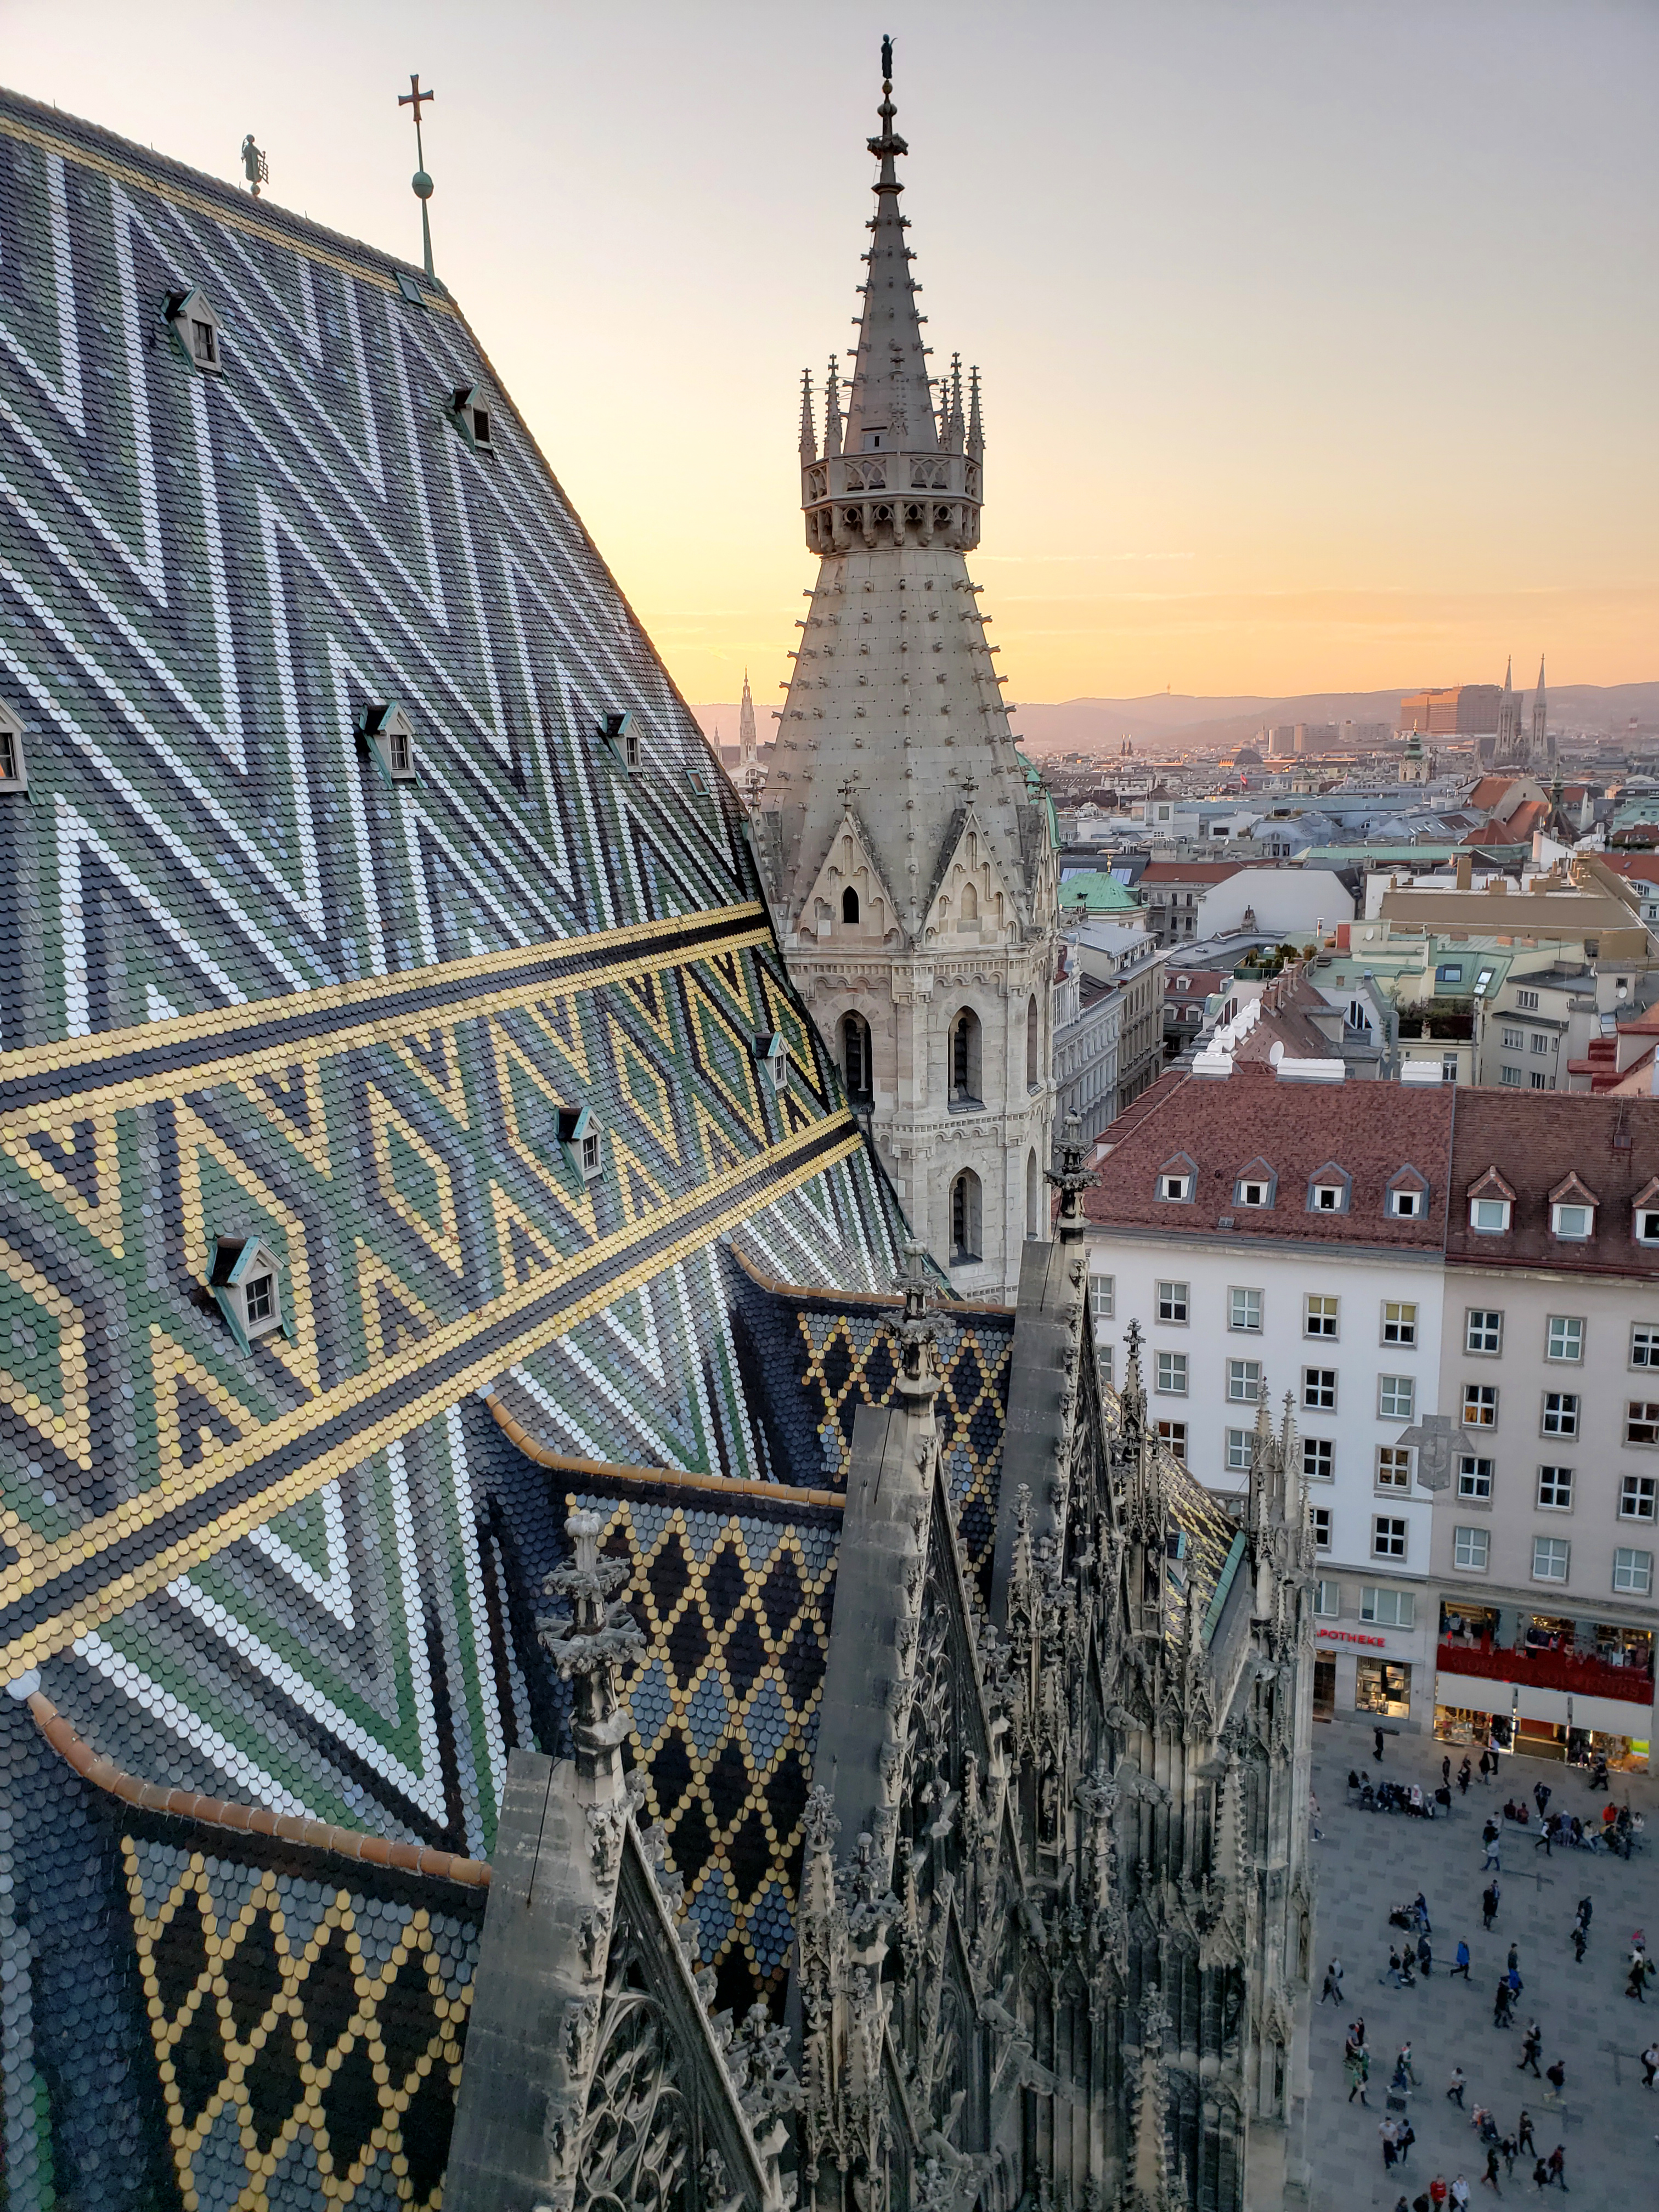 Vienna_Stephansdom_Austria_Europe